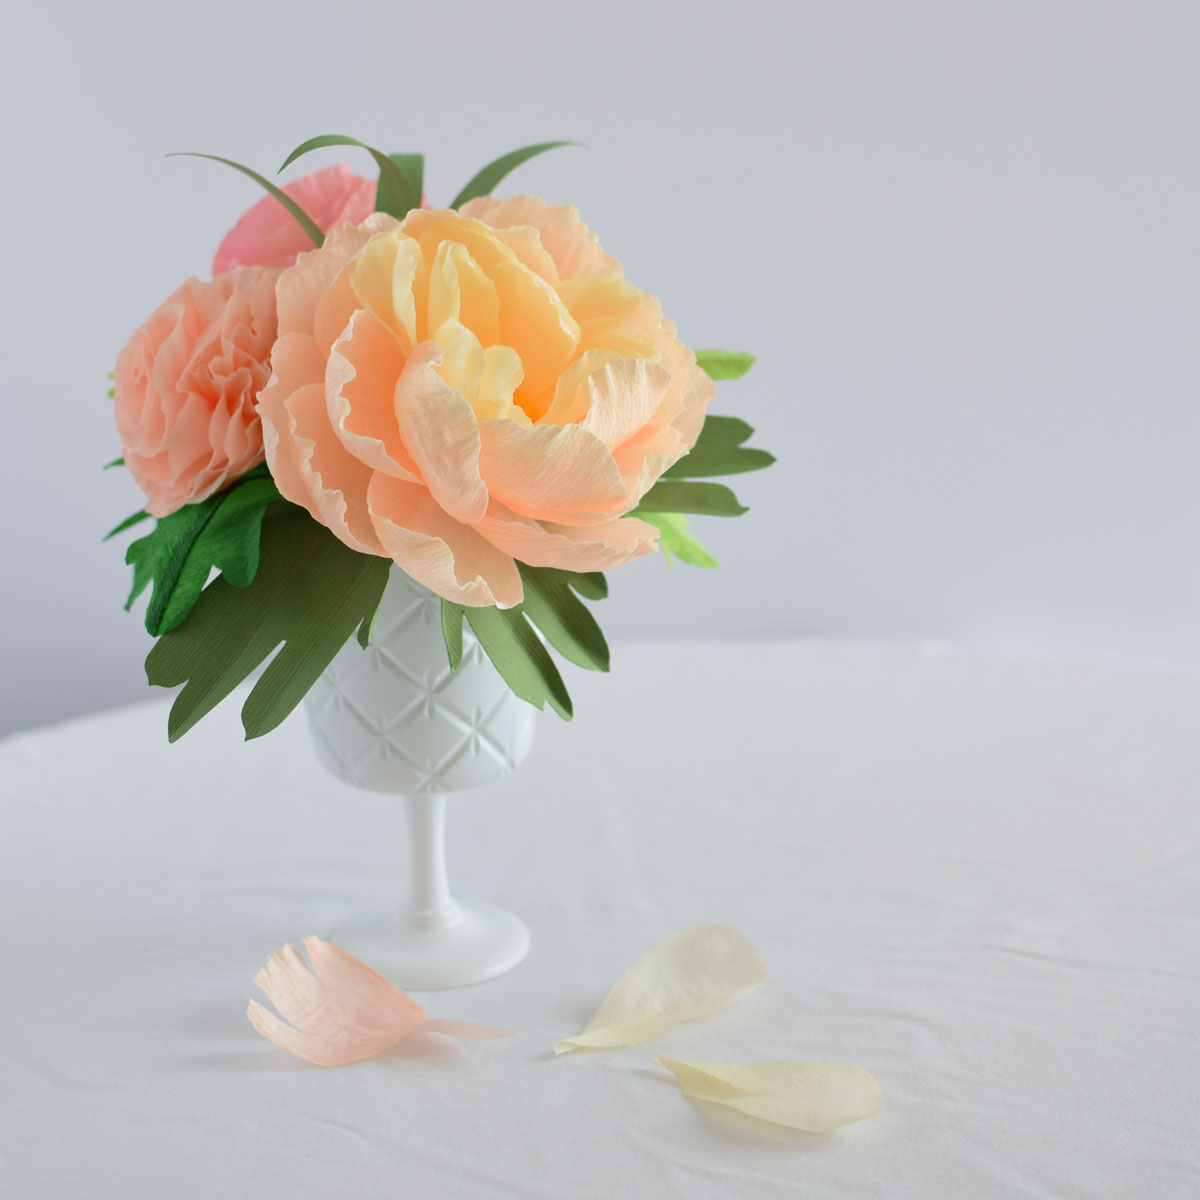 DIY-Paper-Flower-Arrangement-with-Peony-and-Carnations-vertical-with-pink-carnation-SENT-TO-TPP.jpg